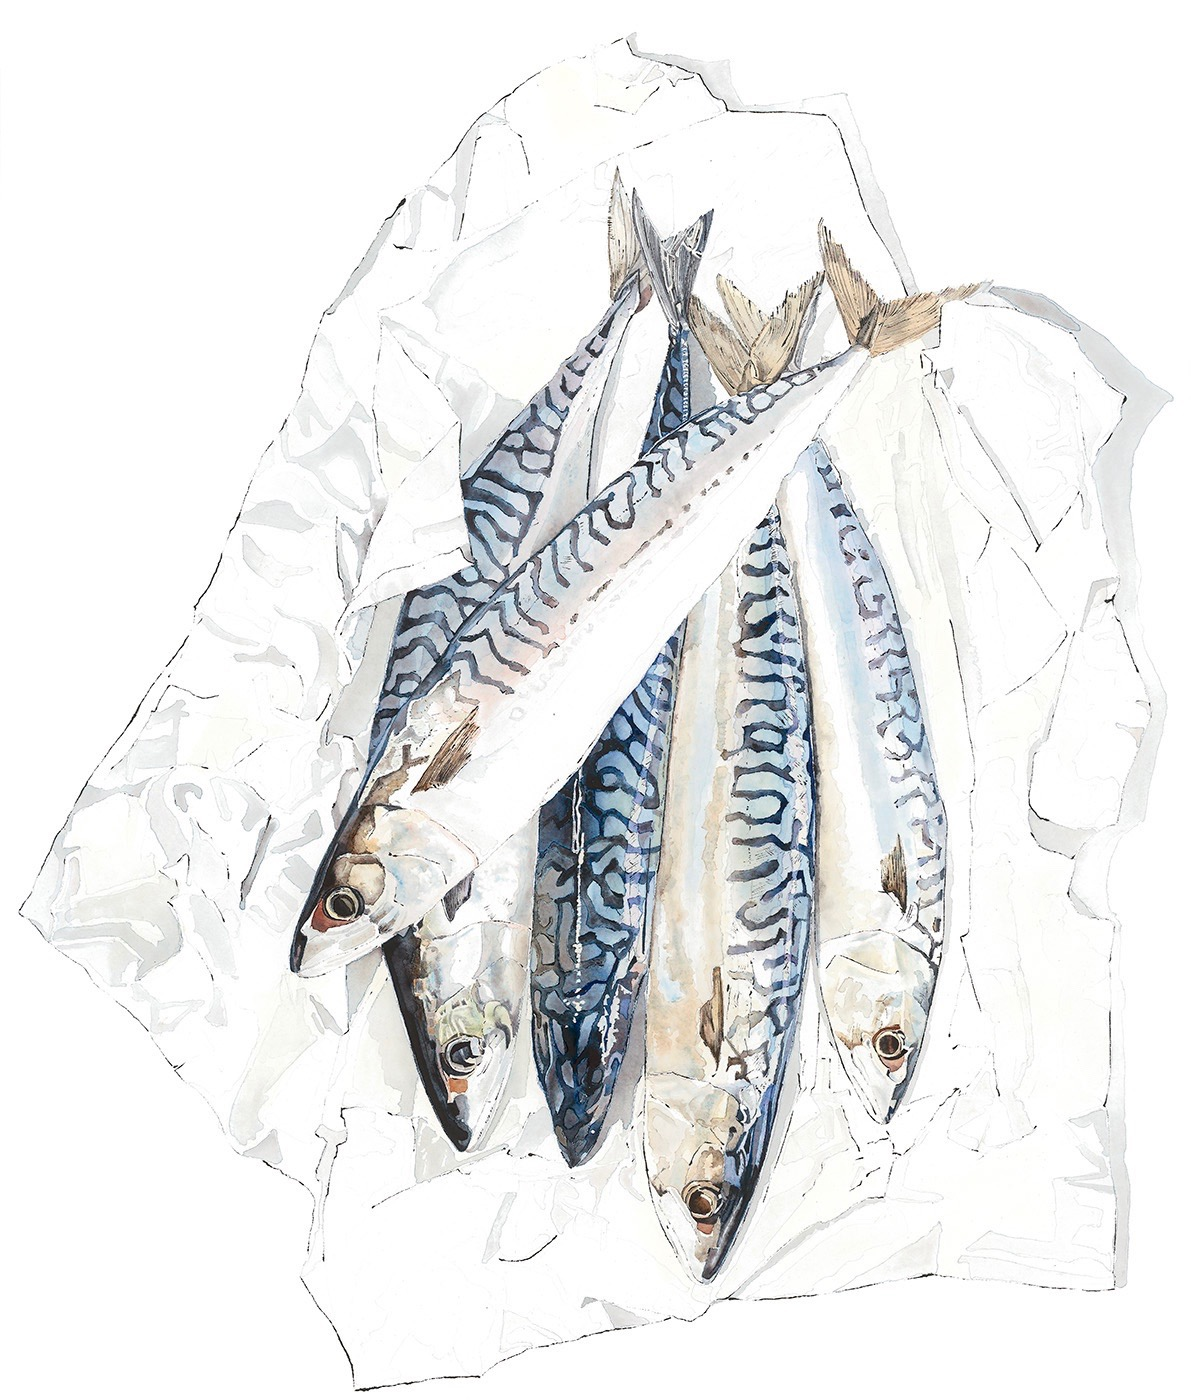 Mackerel - watercolour and blotted line painting. Available as a Giclee print.